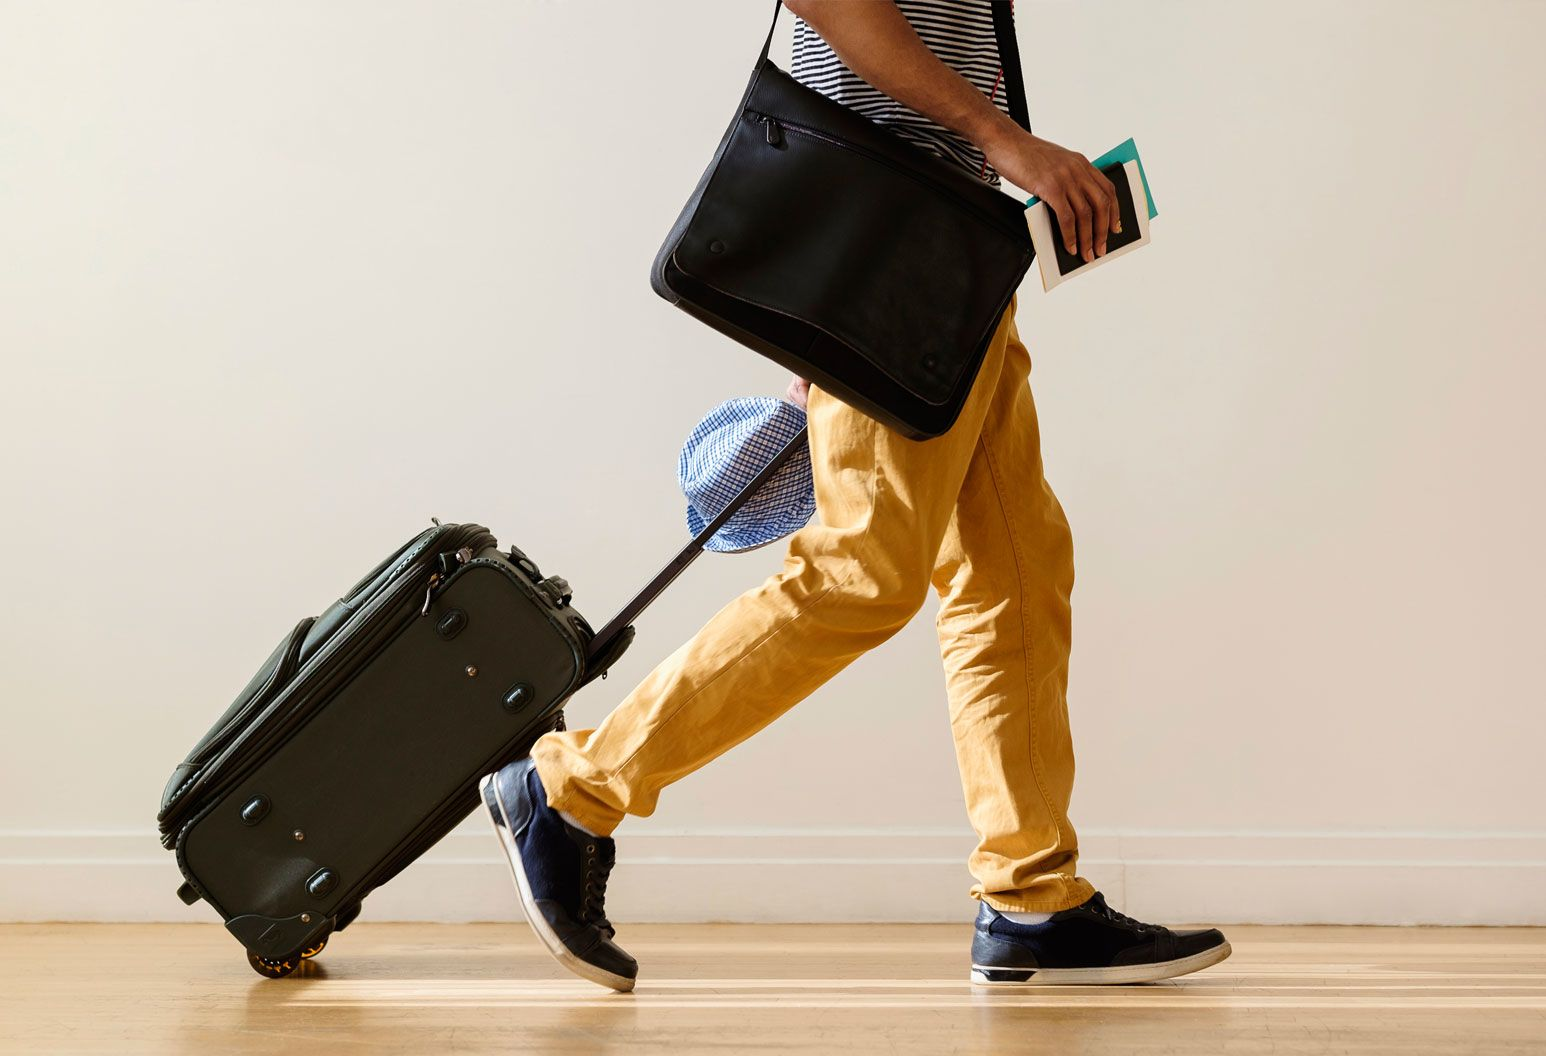 A man rolling a suitcase and holding a passport is walking. He wears a striped t-shirt, tan pants and black sneakers. He has a computer bag on his shoulder and looks like he's travelling.